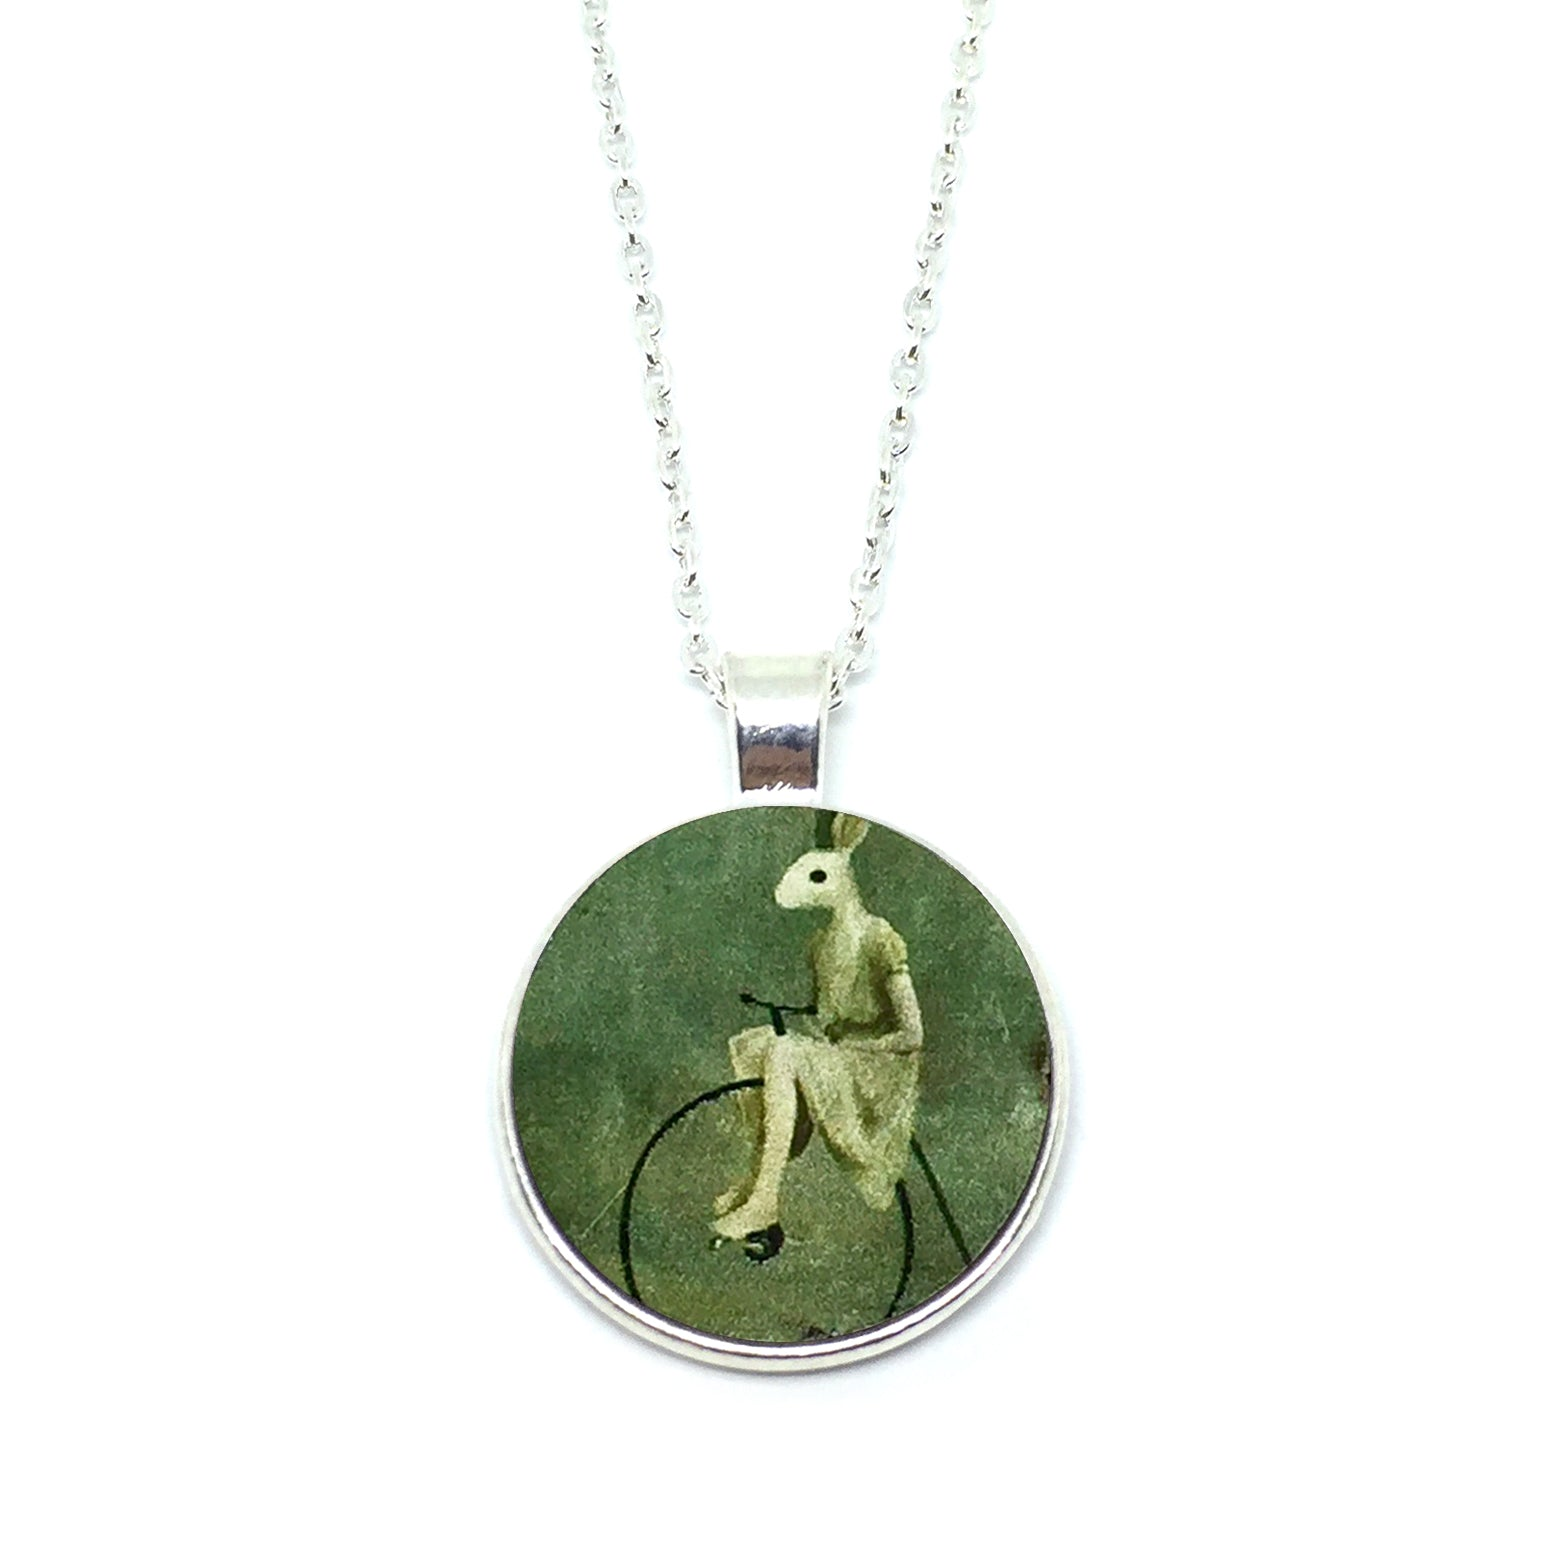 Mythical Rabbitgirl On Wheel Necklace